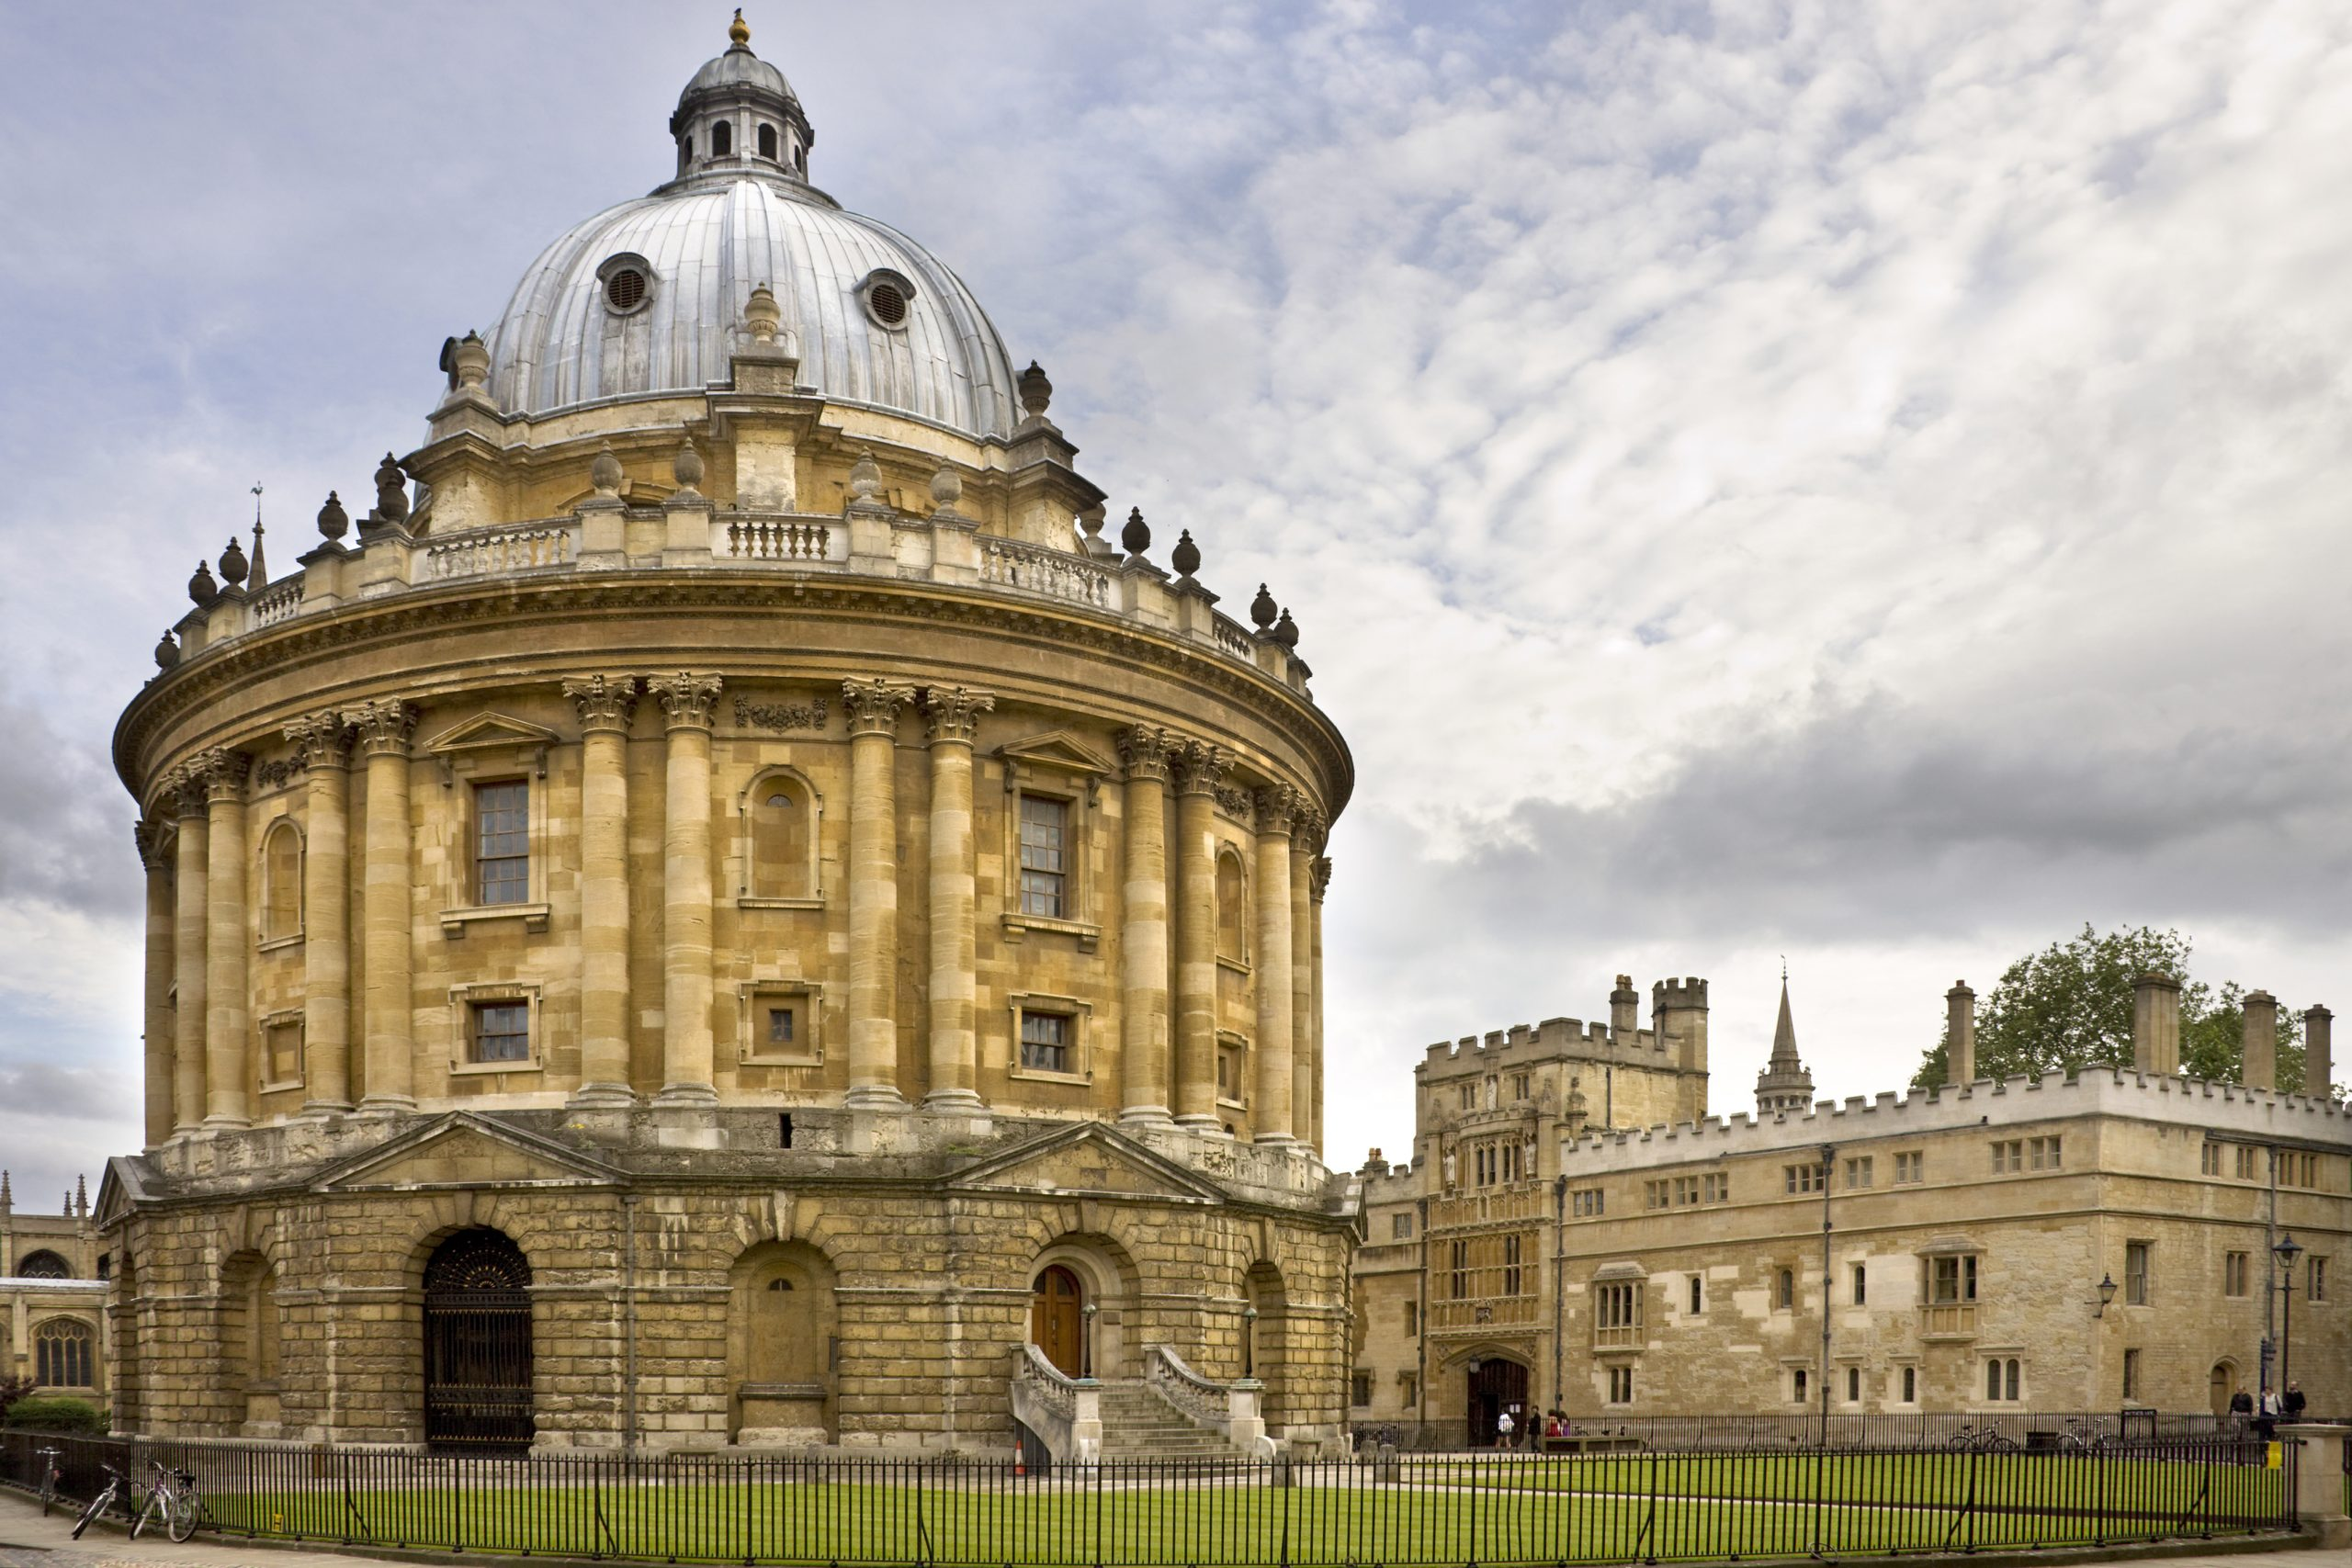 The Radcliffe Camera at University of Oxford